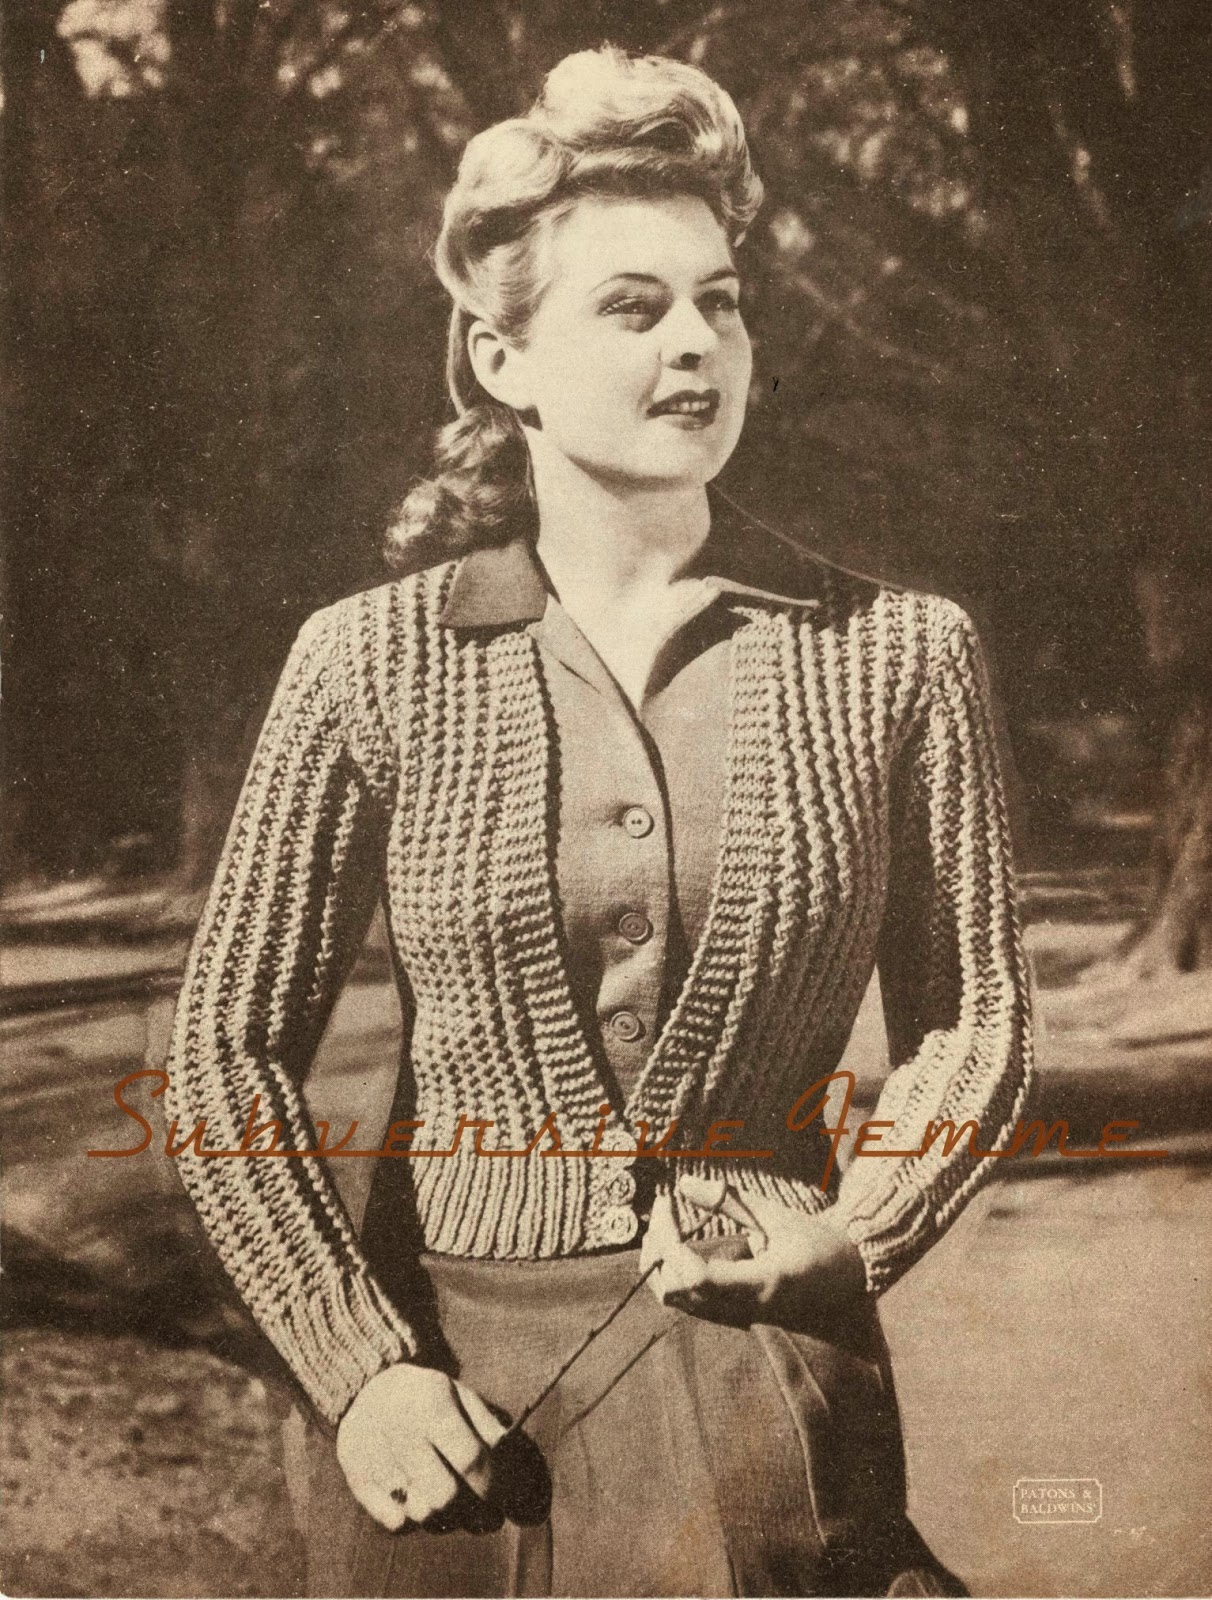 1940 Knitting Patterns Free : The Vintage Pattern Files: 1940s Knitting - Belinda Cardigan